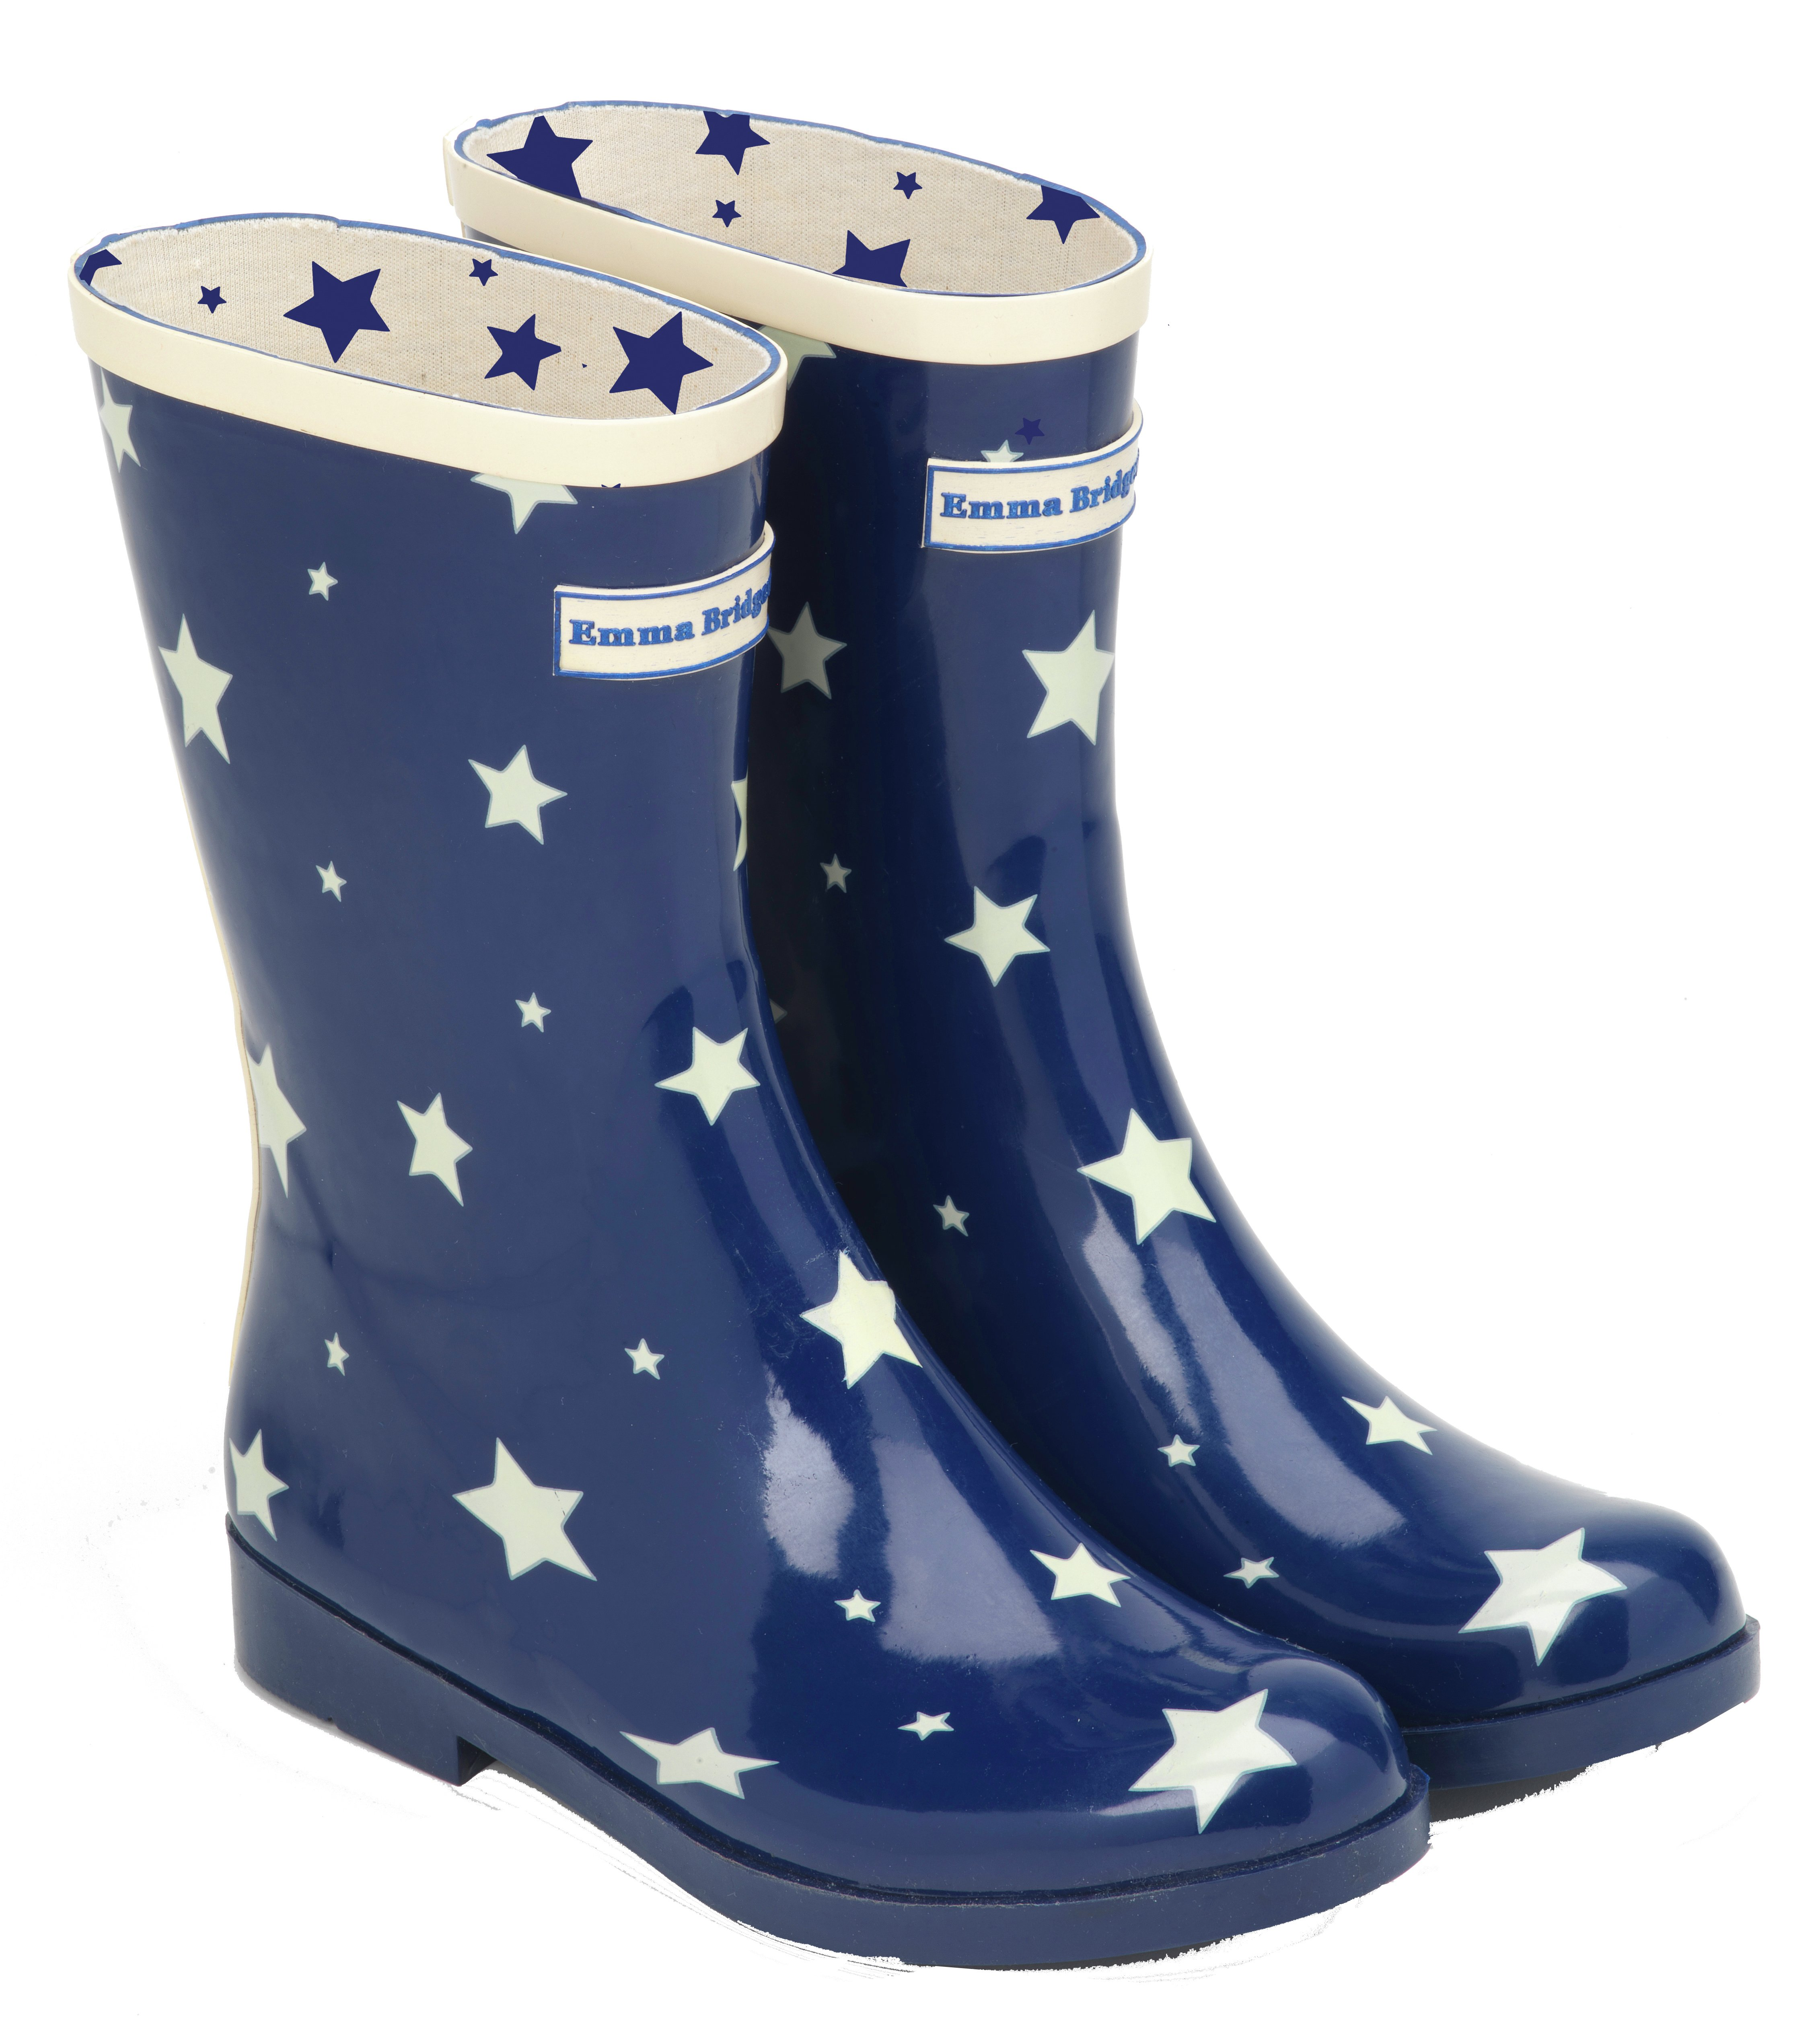 Image of Emma Bridgewater - Womens - Short Starry Skies Wellies - Size 3